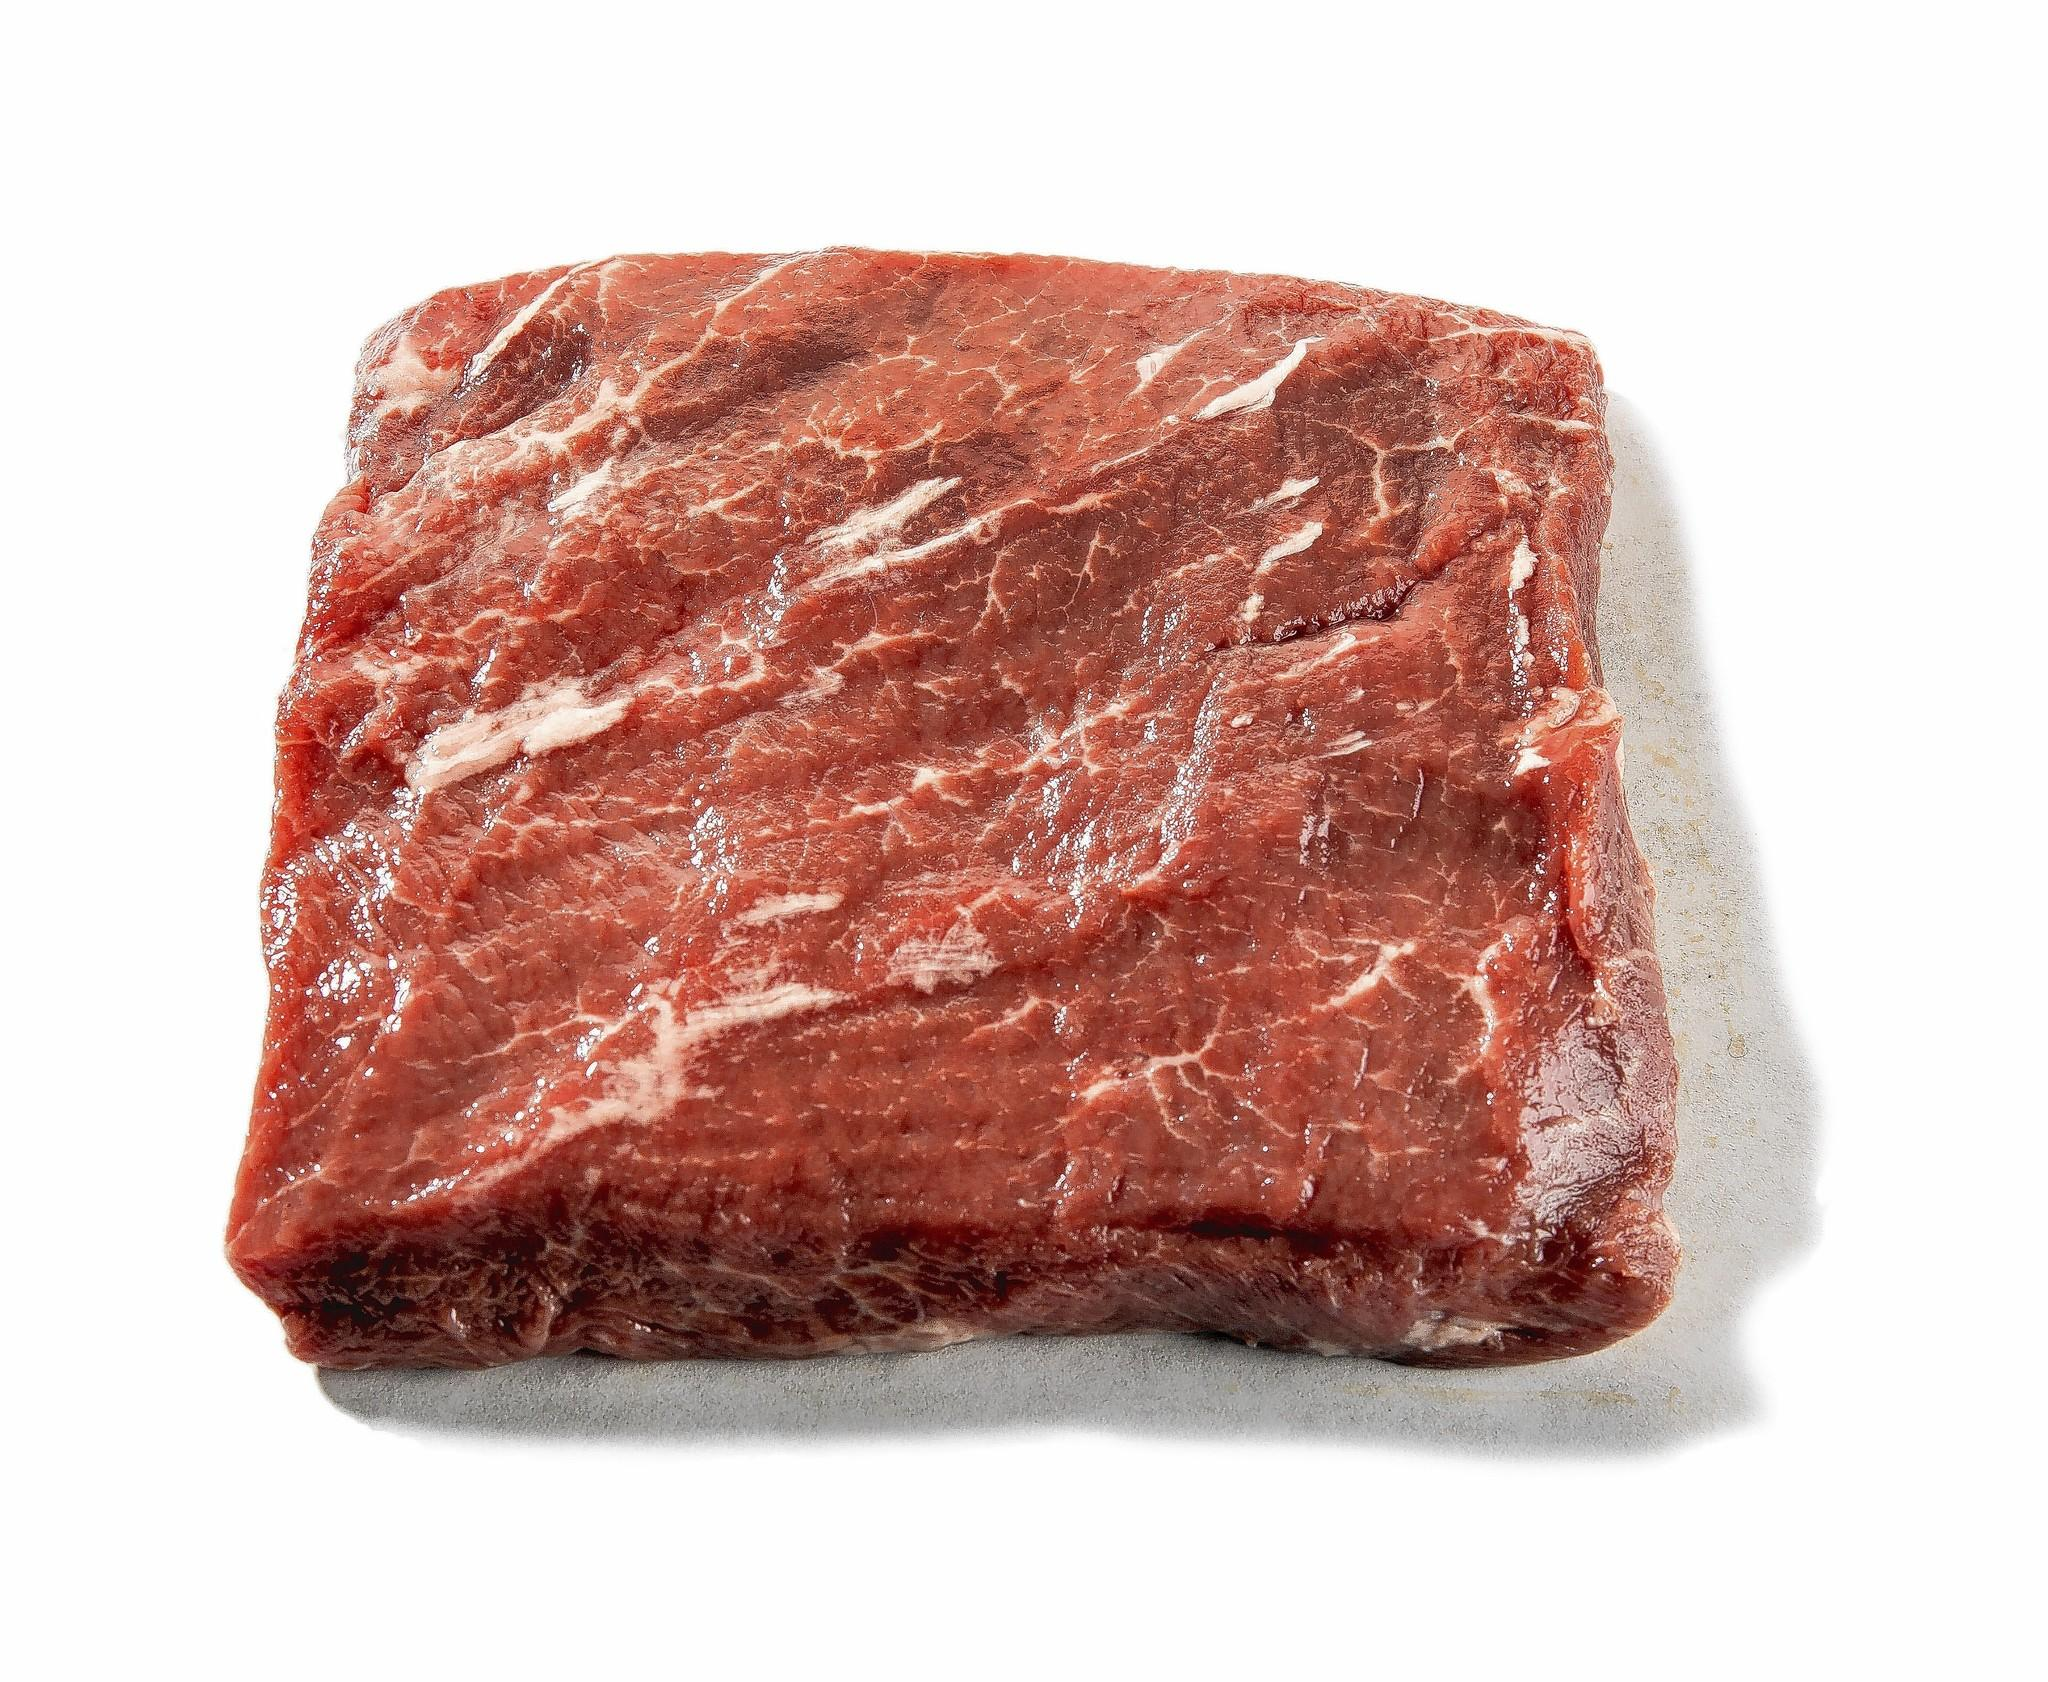 (Shoulder top blade steak.) Boneless and cut from the shoulder clod top blade roast, each steak averages 8 ounces, with a thickness varying from 3/4 to 11/4 inch. Section: chuck